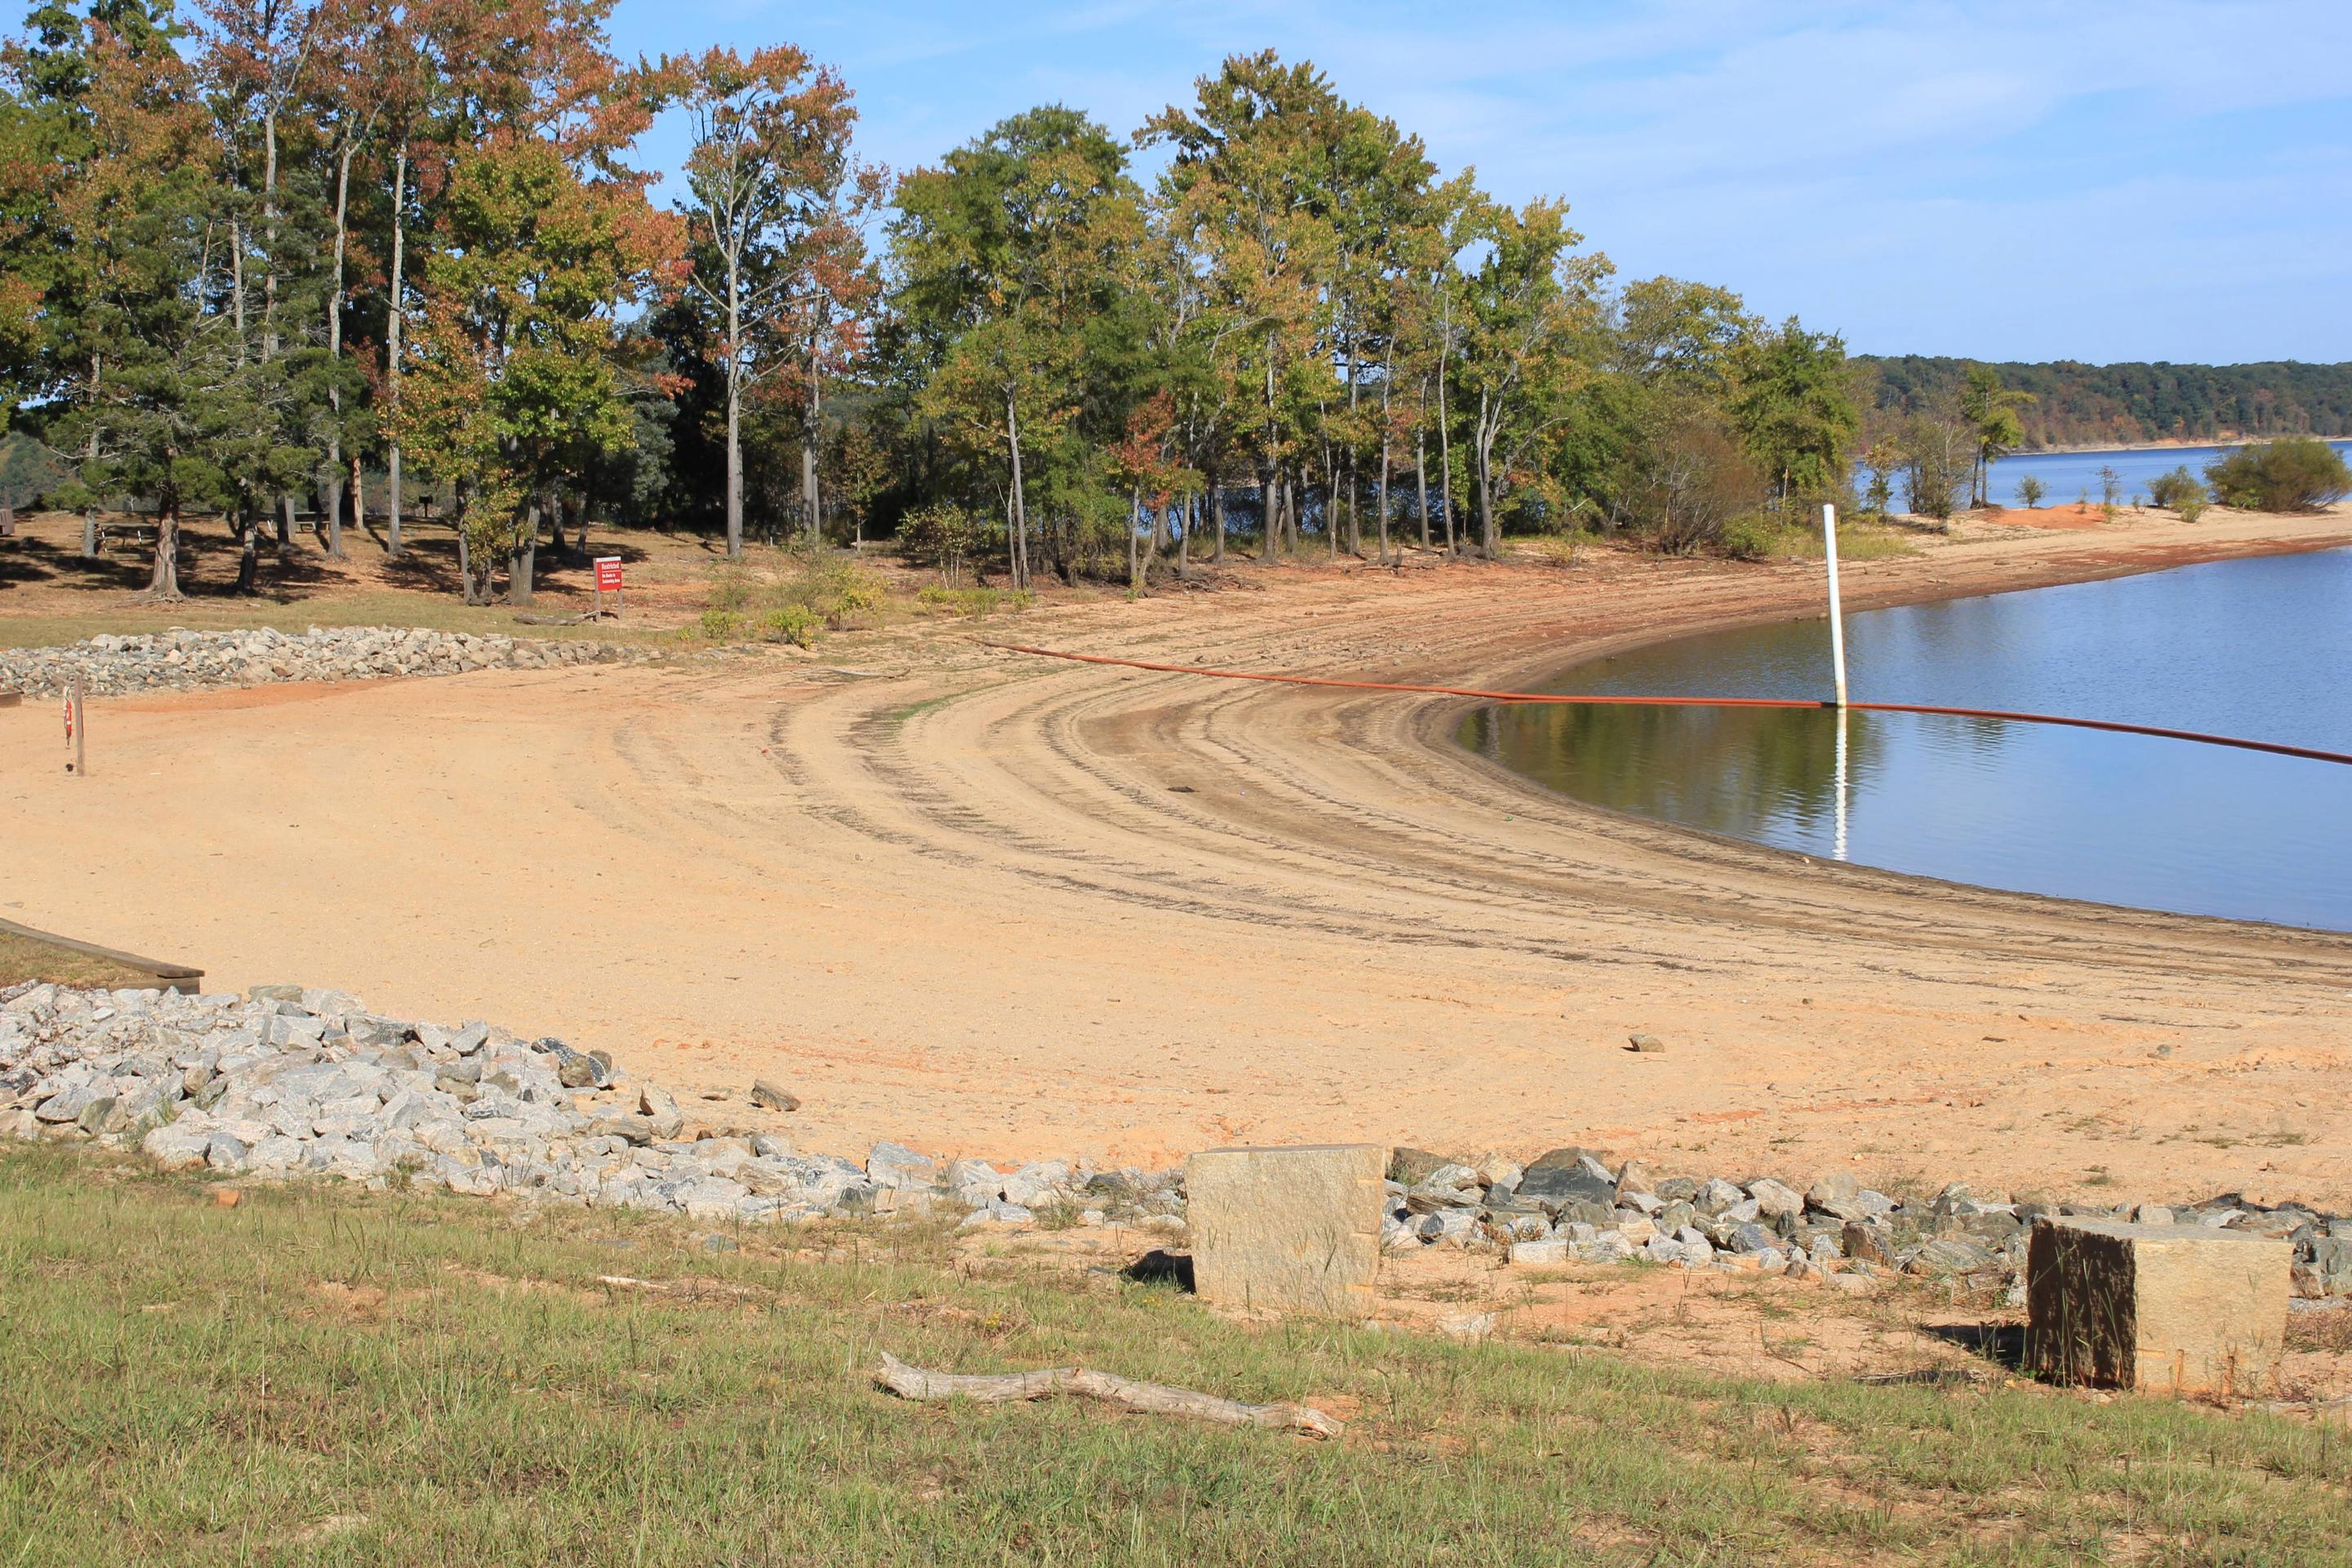 Buffalo Park Swimming AreaWelcome to Buffalo Park! This is a picture of the swimming area located in the Day Use Area here at Buffalo Park. Always remember to wear your life jacket!